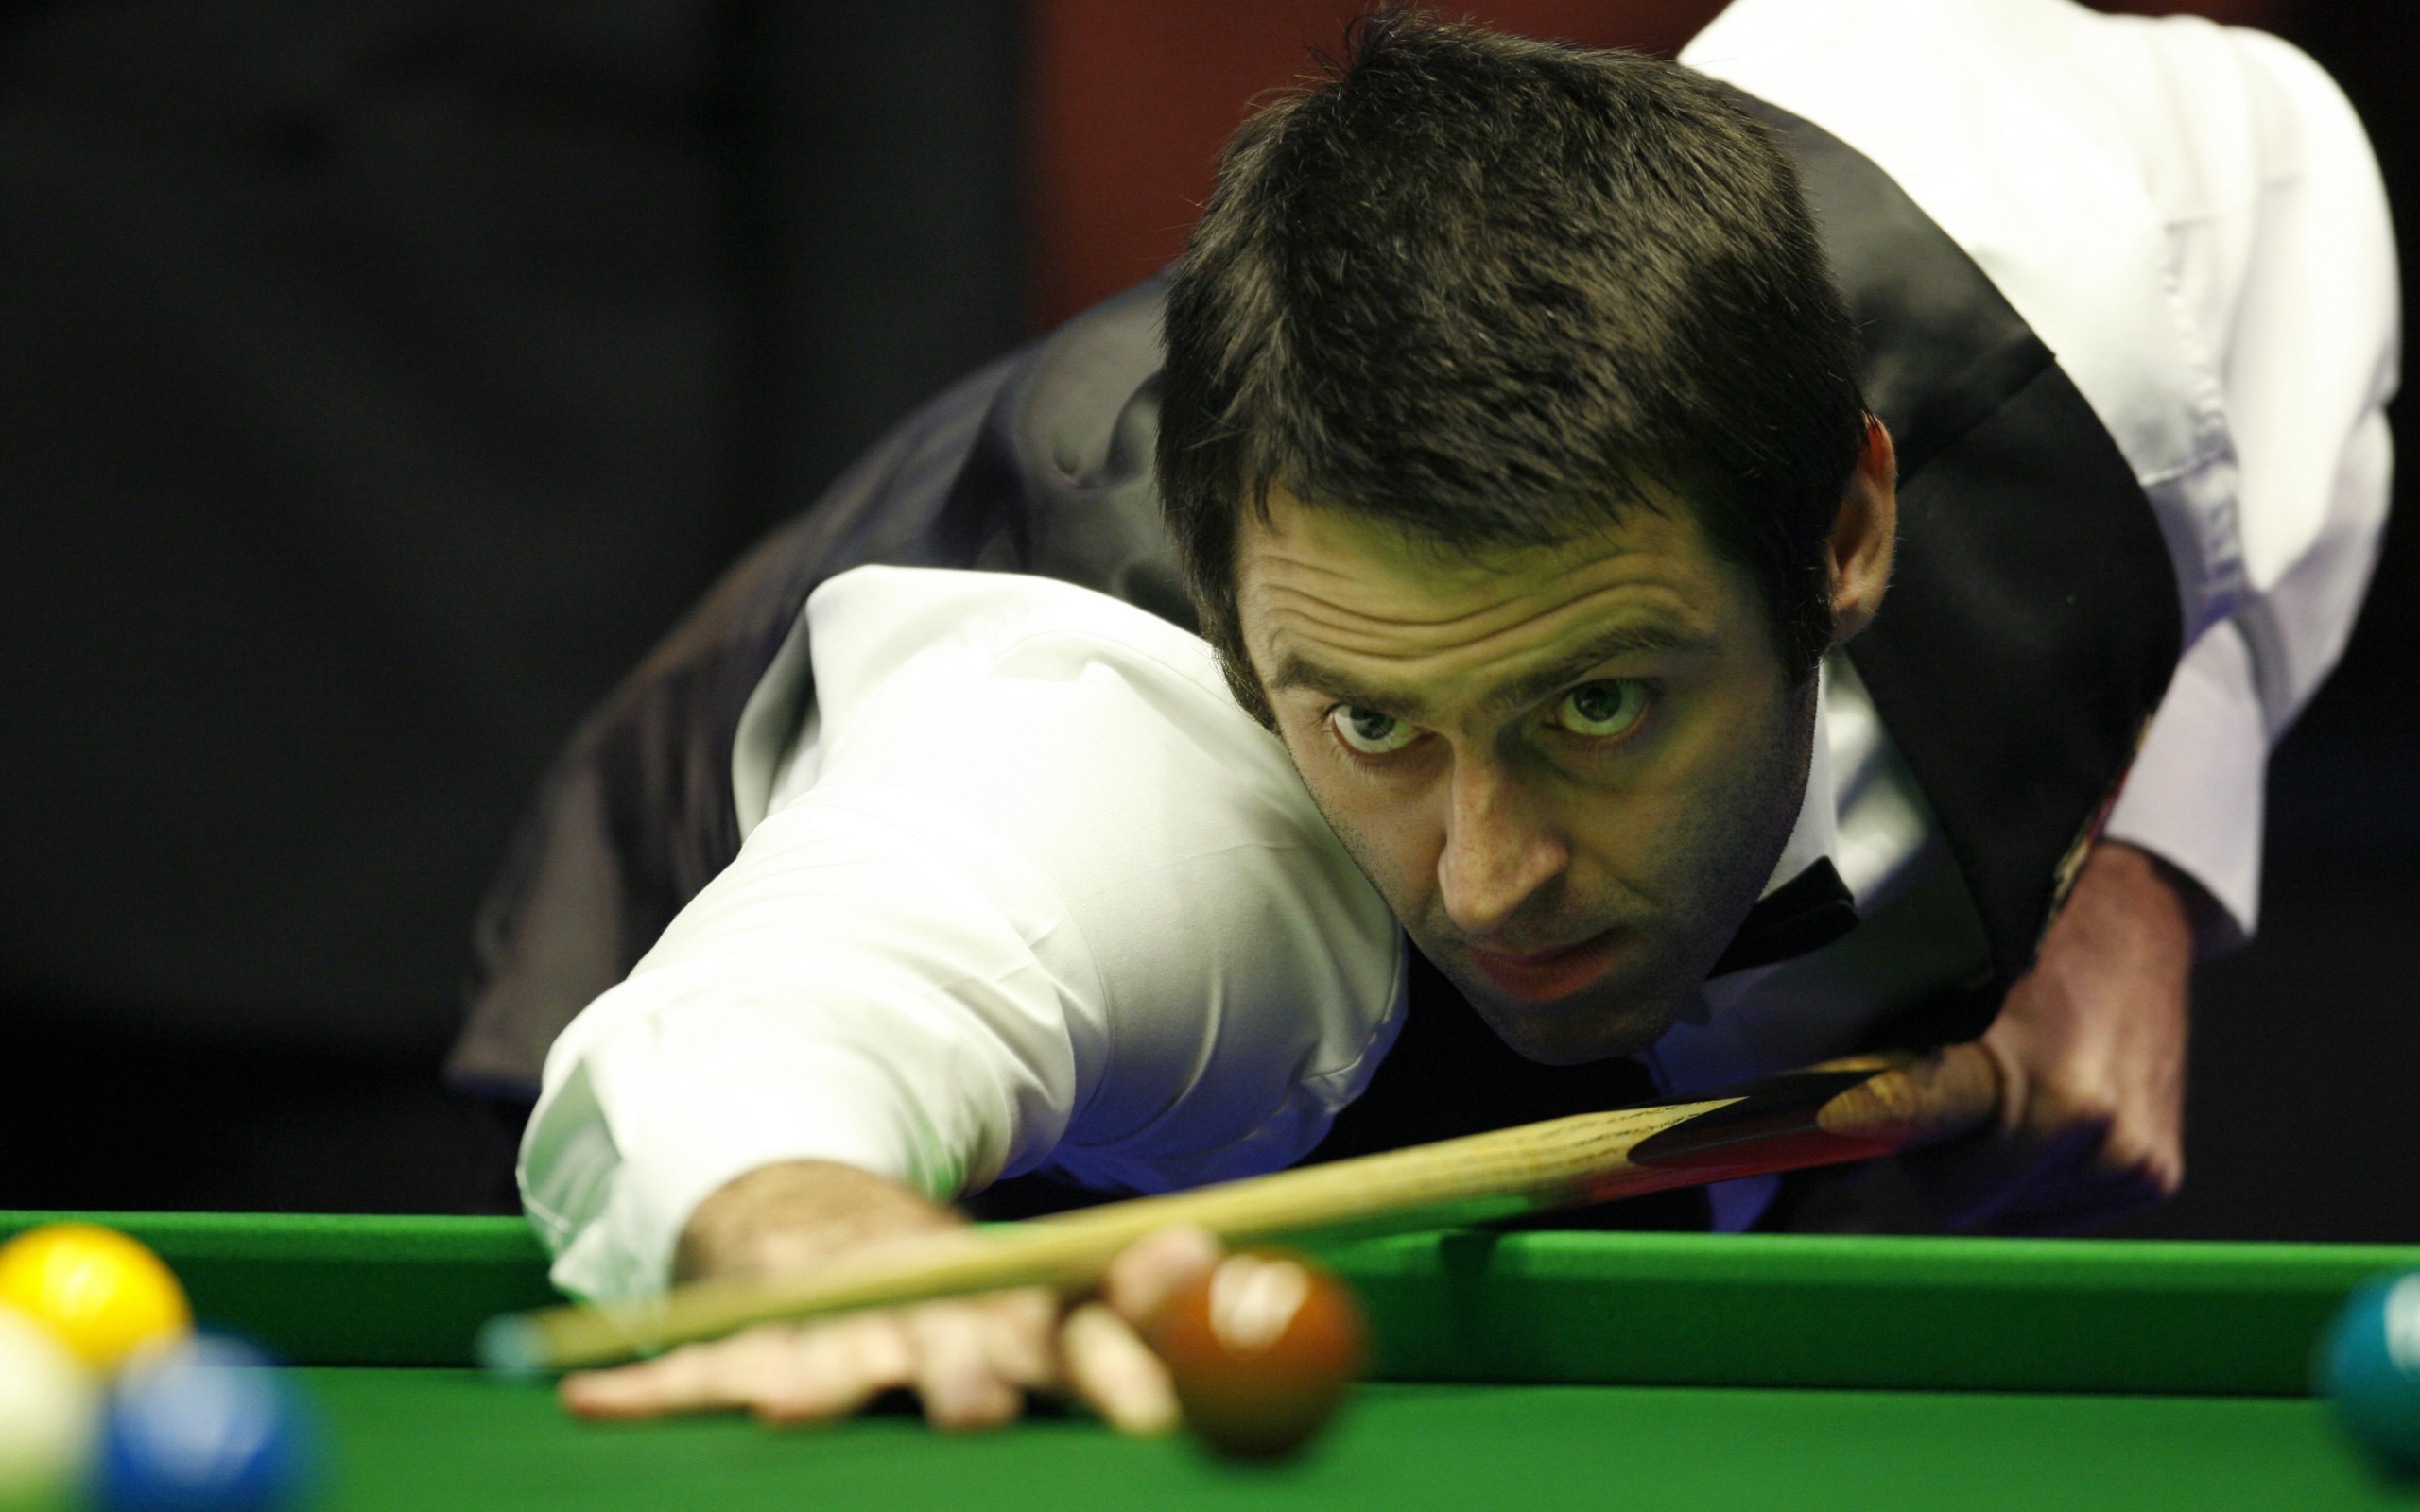 2560x1600 - Snooker Wallpapers 33